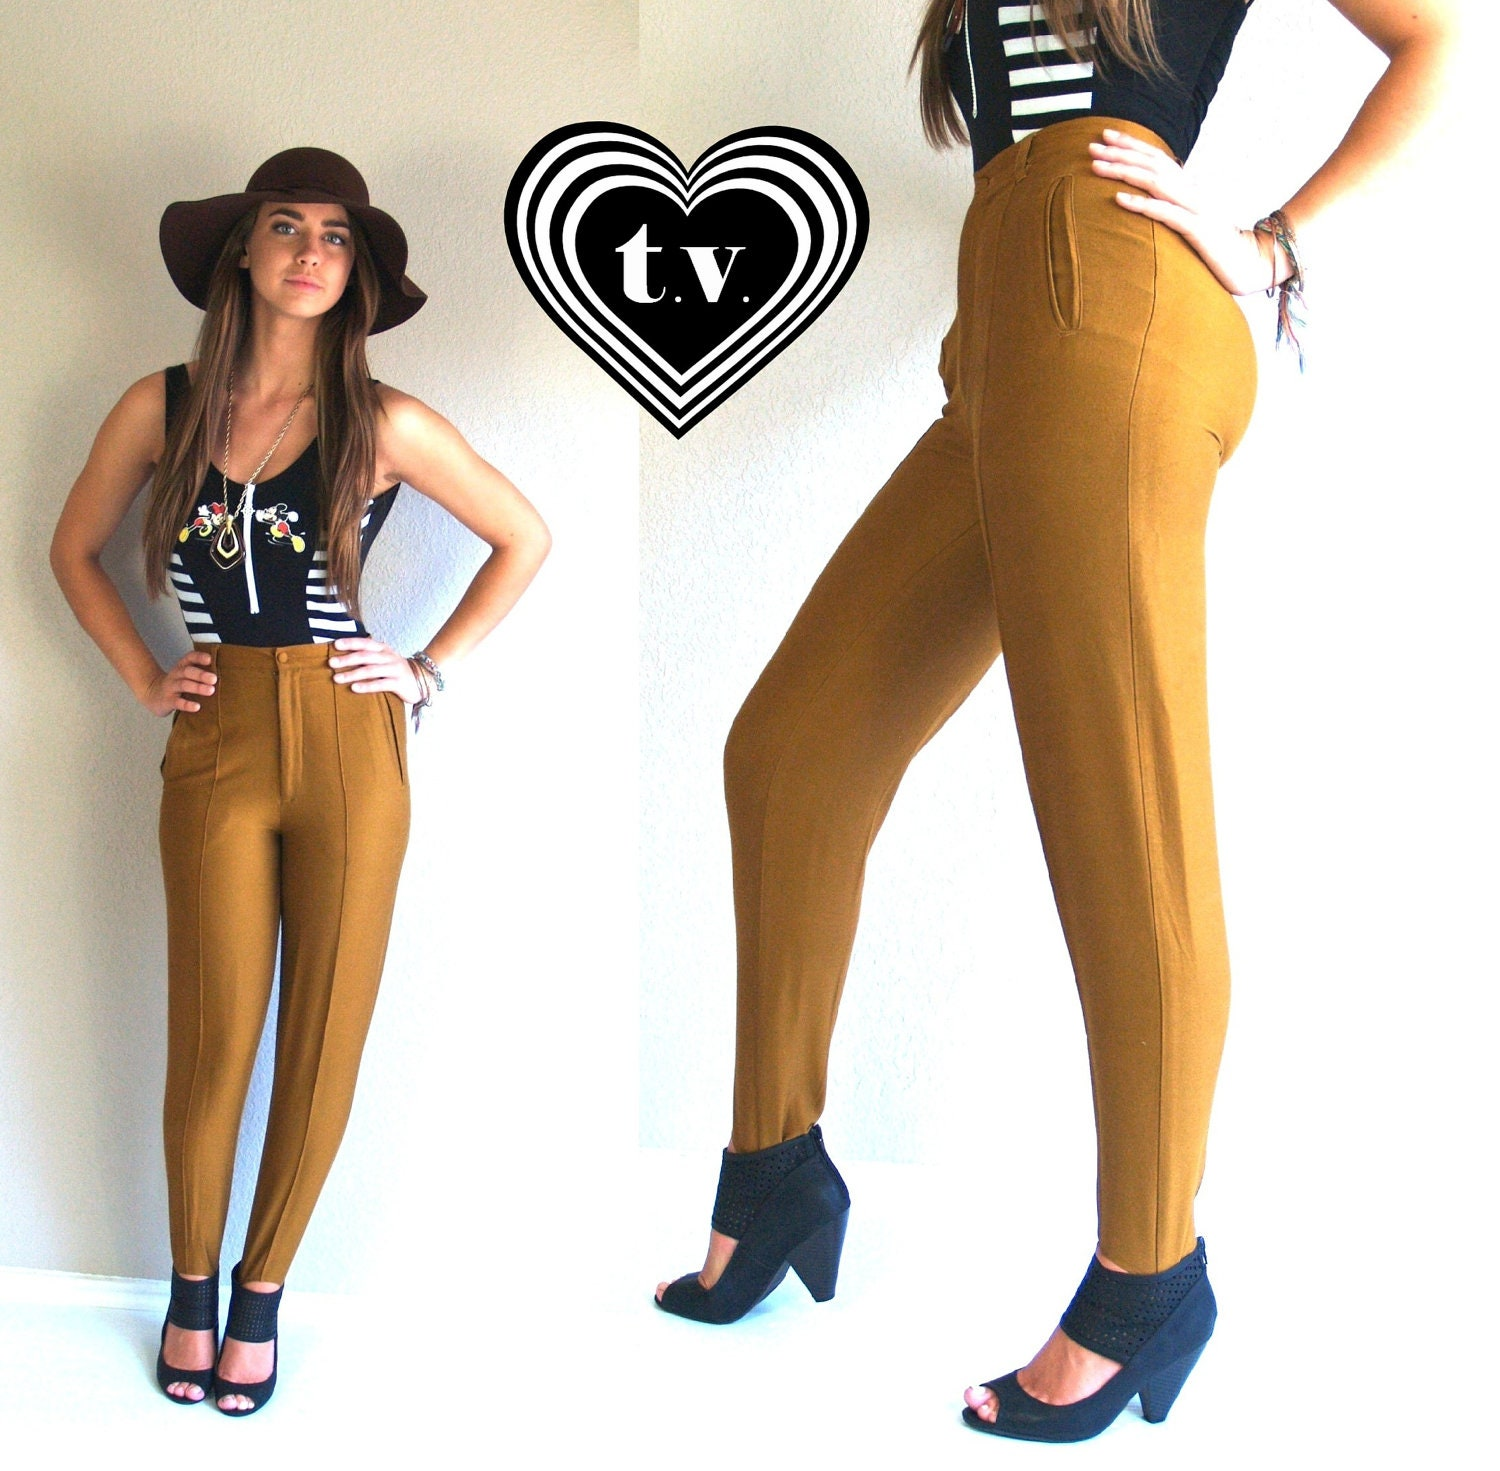 Vtg 90s Tight Marigold High Waist Stirrup Pants Skinny Xs